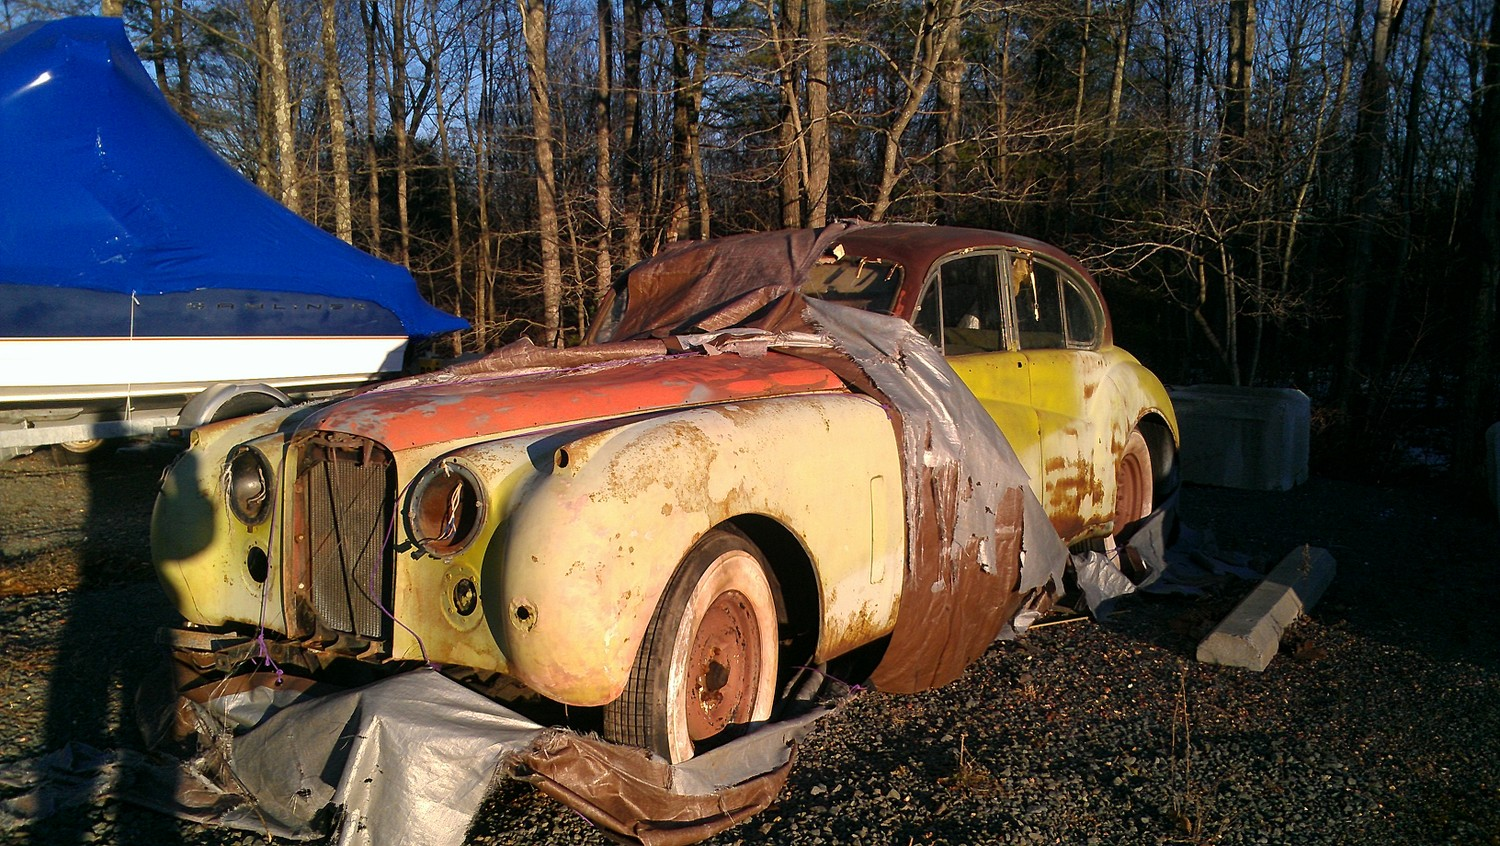 saw this on the back lot of the storage facility last week, one of a row of three rotting beauties. sigh.